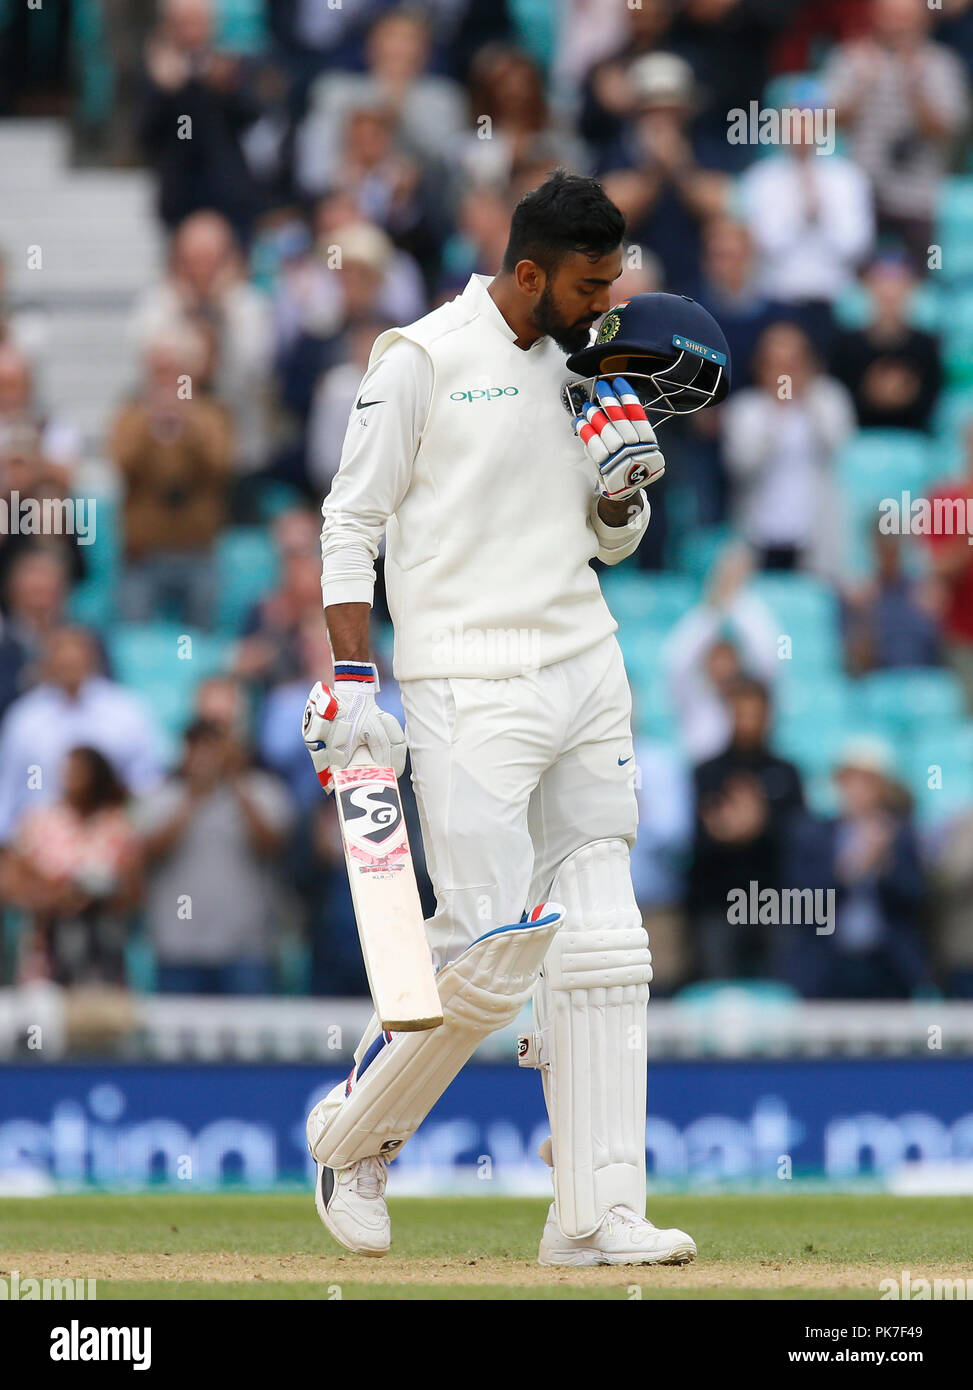 Kia Oval, London, UK. 11th Sep, 2018. Specsavers International Test Match Cricket, 5th test, day 5; KL Rahul of India kisses the badge on his helmet as he reaches his century Credit: Action Plus Sports/Alamy Live News - Stock Image